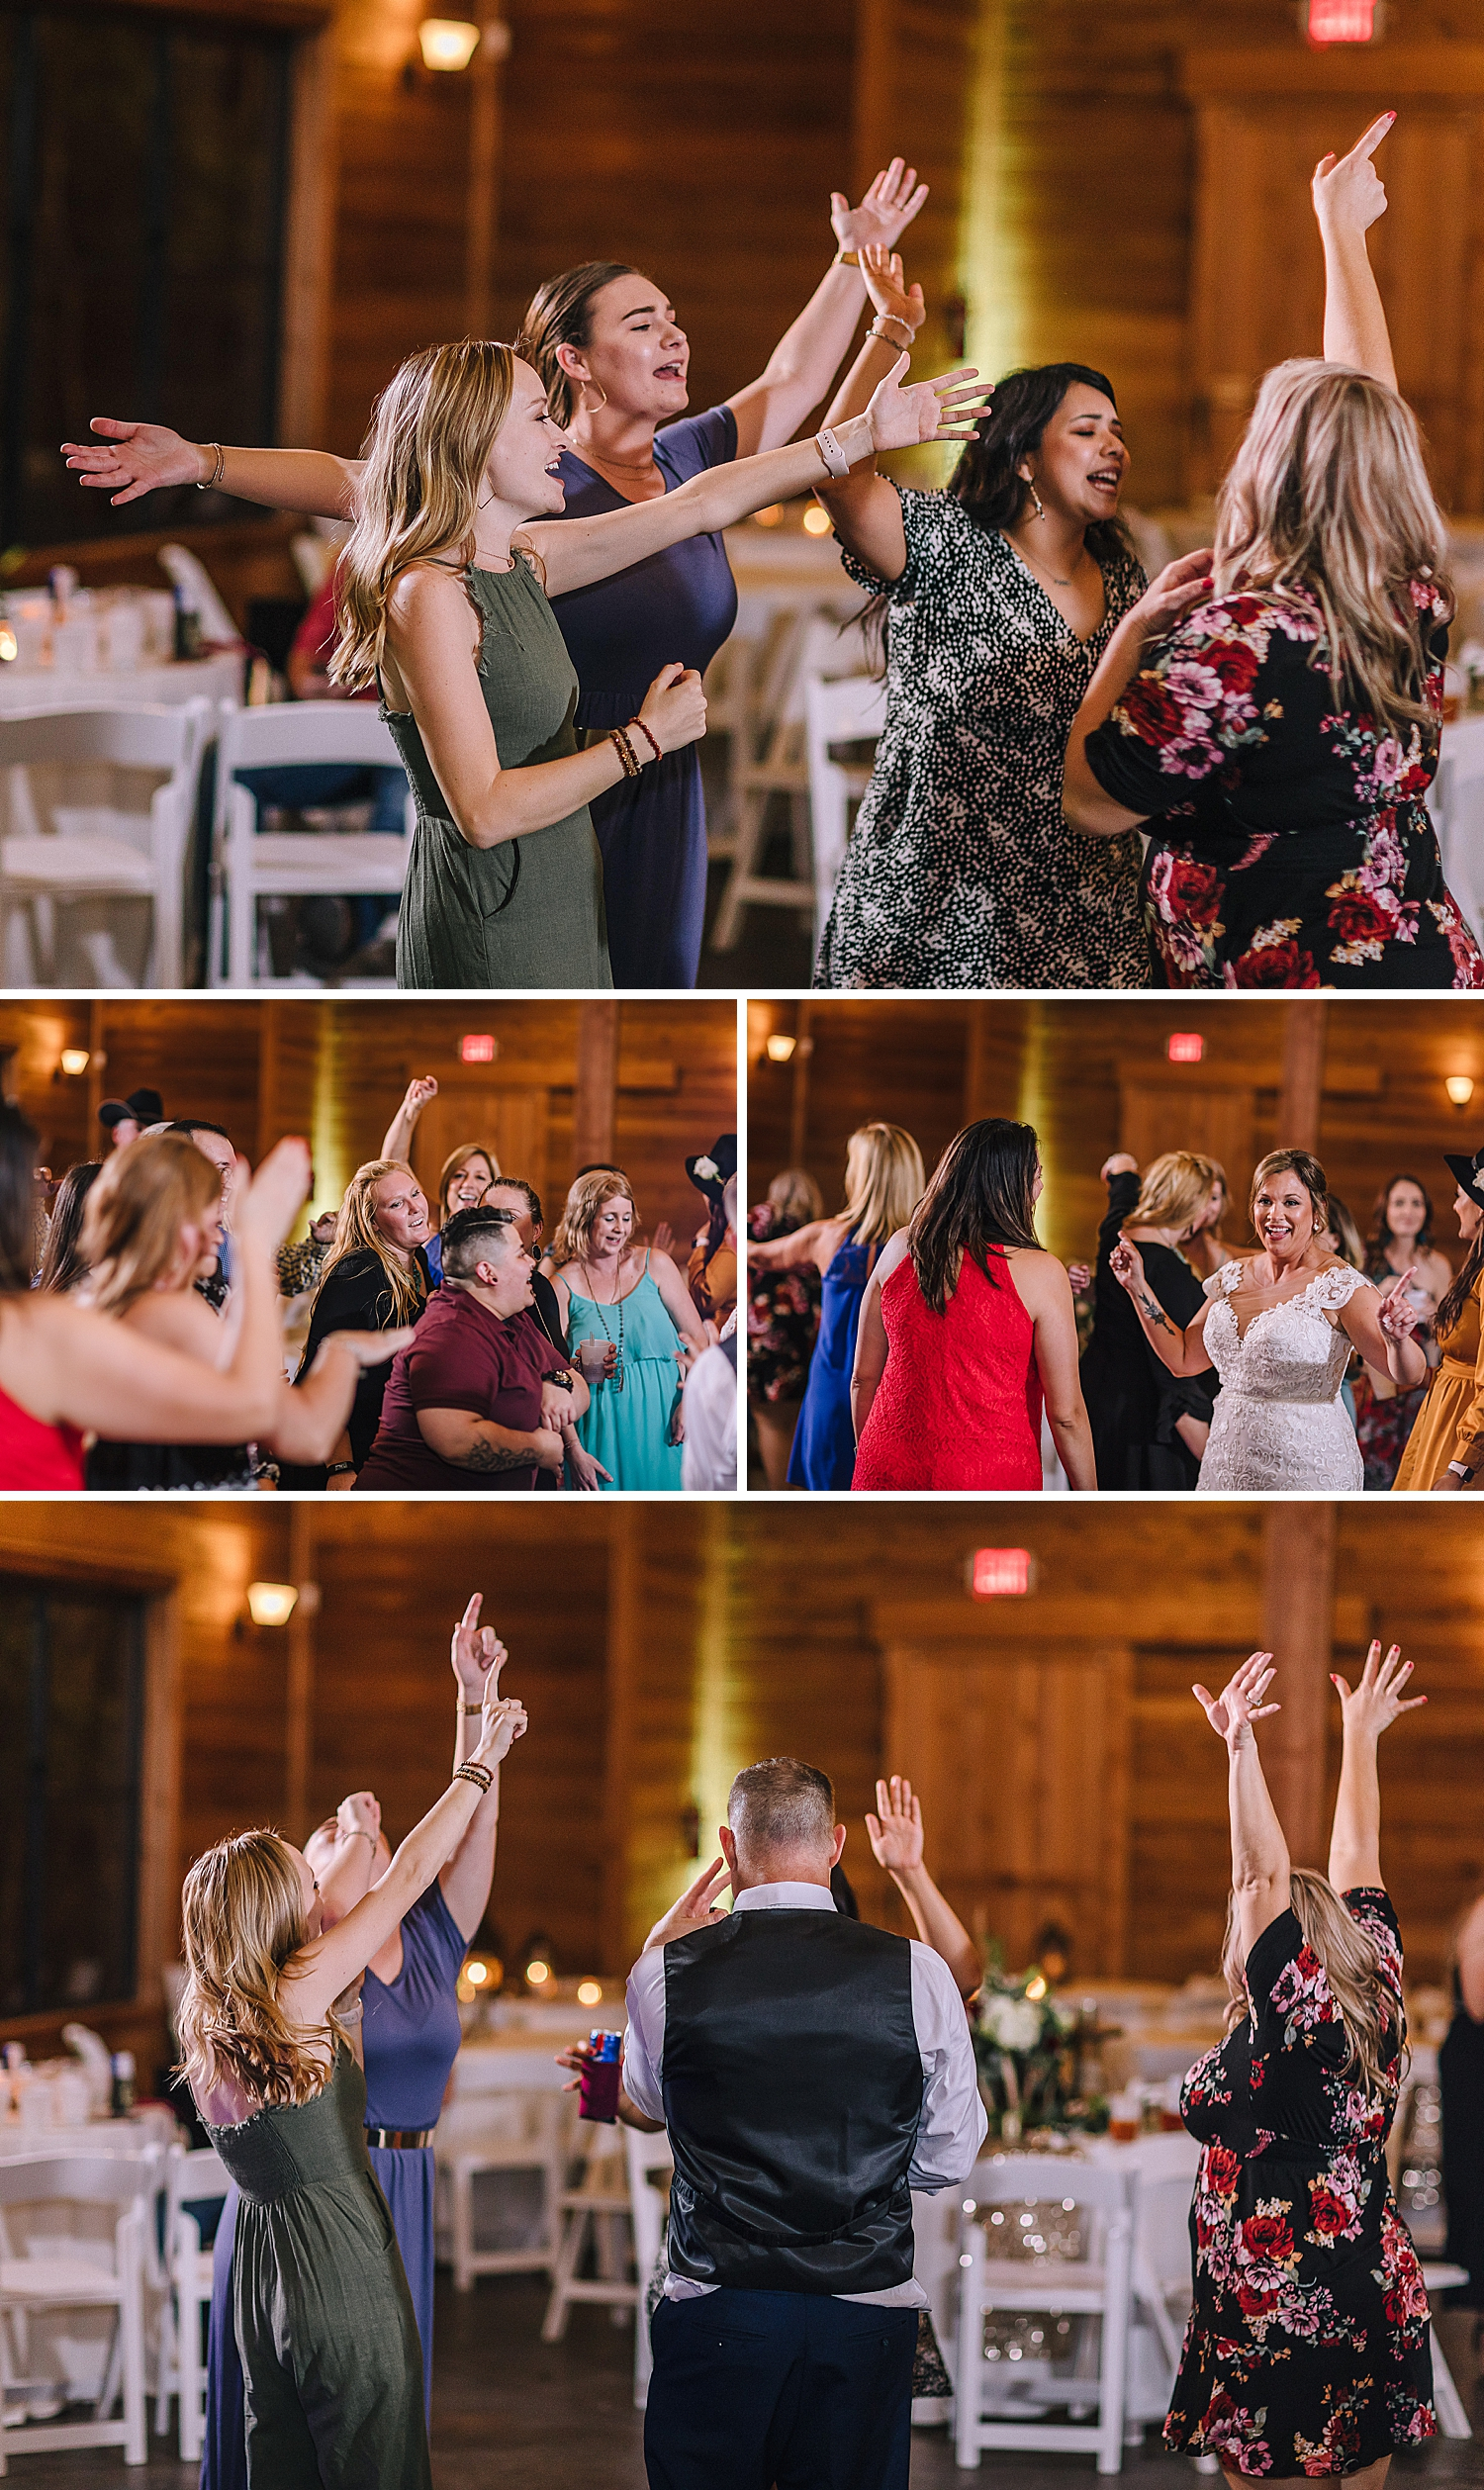 Geronimo-Oaks-Wedding-Venue-Seguin-Texas-Elegant-Navy-Burgundy-Wedding-Carly-Barton-Photography_0078.jpg